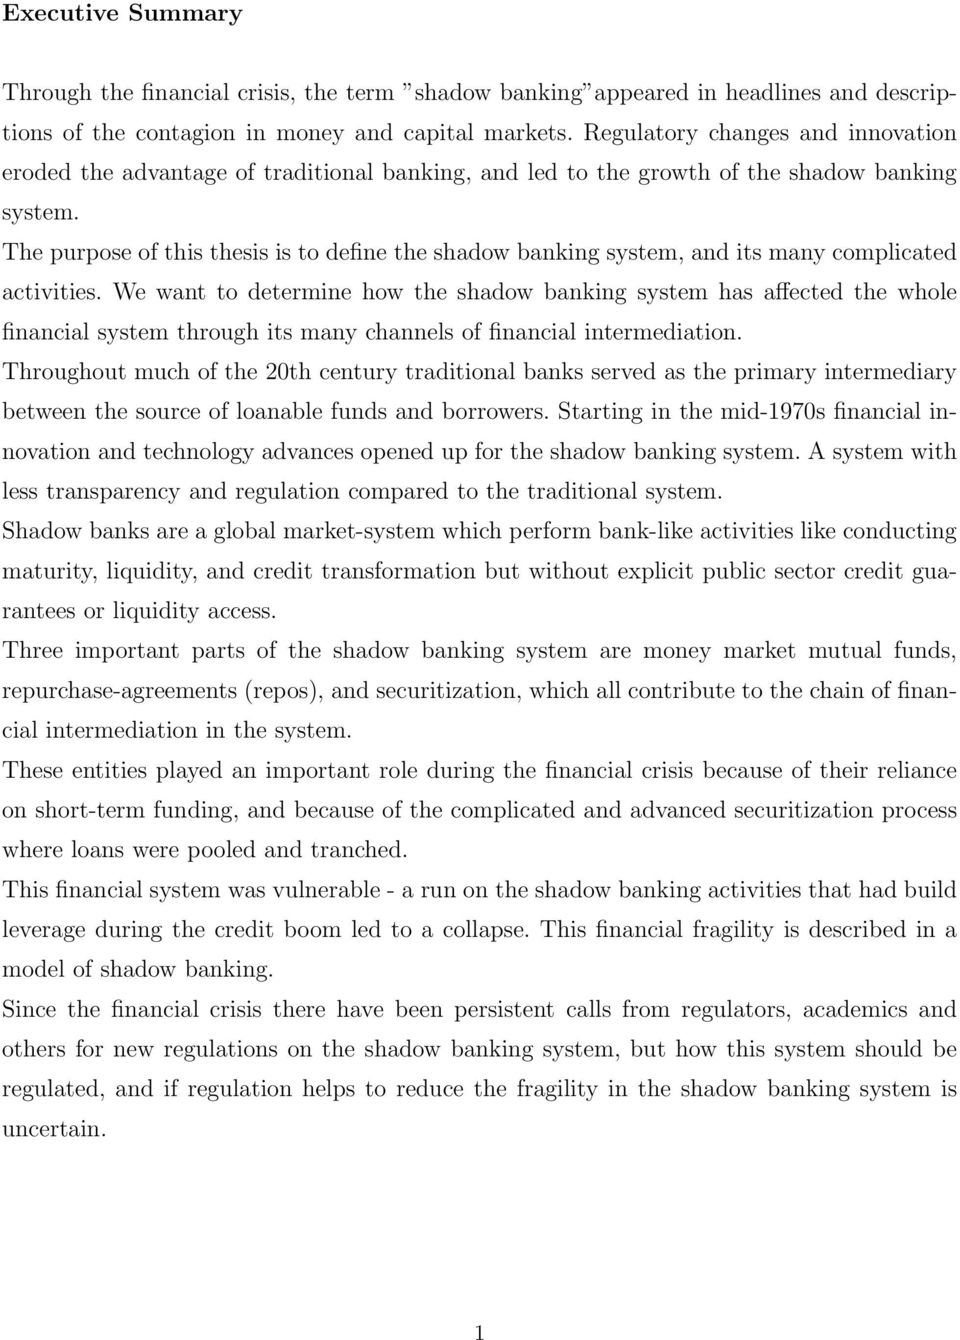 The purpose of this thesis is to define the shadow banking system, and its many complicated activities.